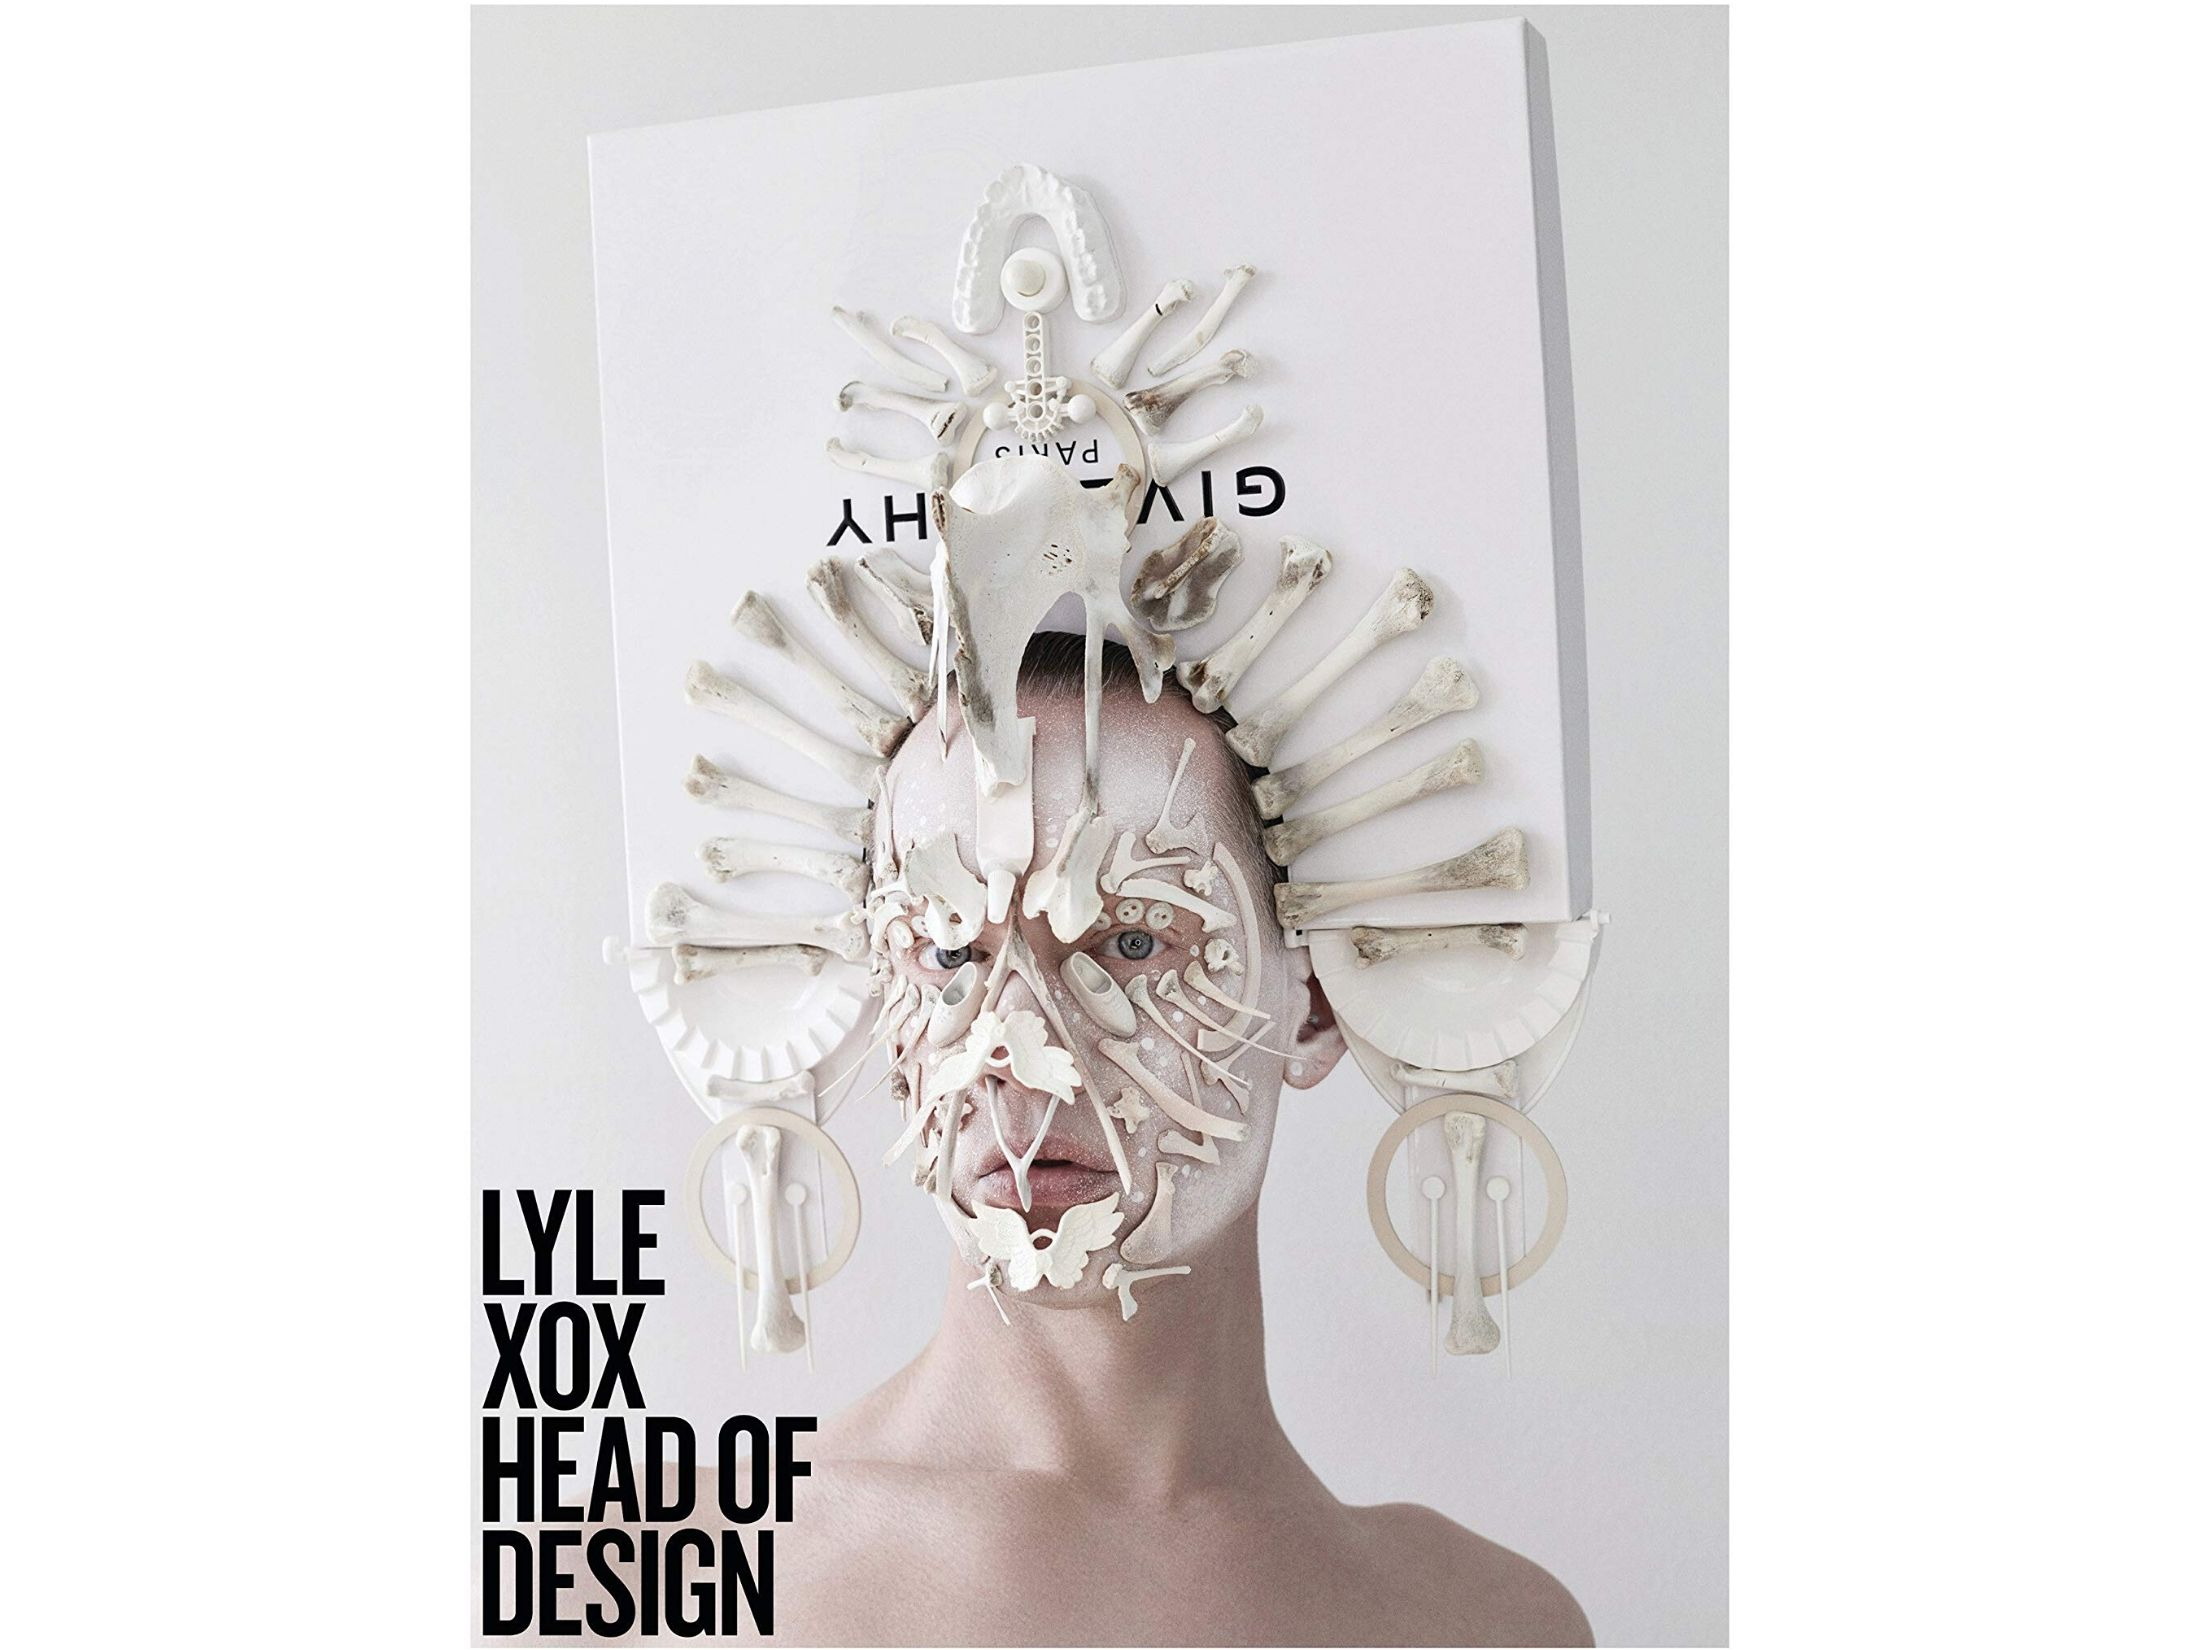 Lyle XOX: Head of Design Book by Rizzoli